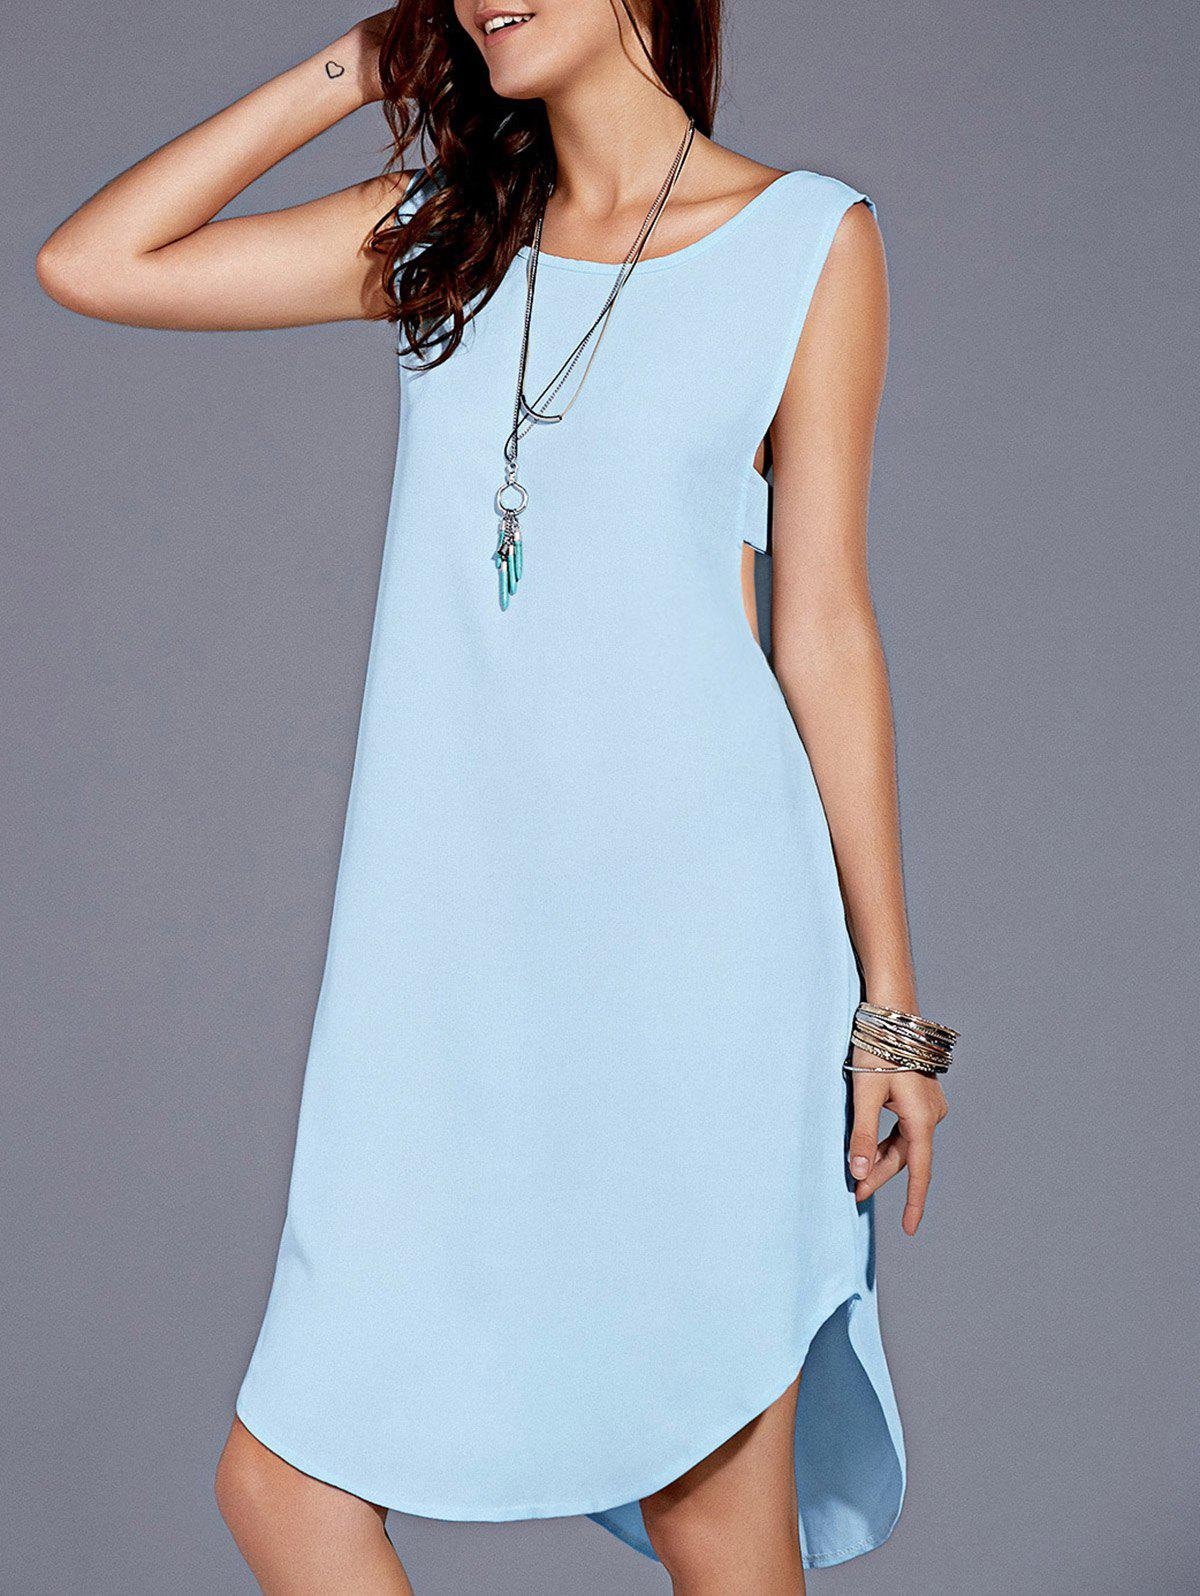 Stylish Women's Scoop Neck Backless High Low Dress - LIGHT BLUE XL